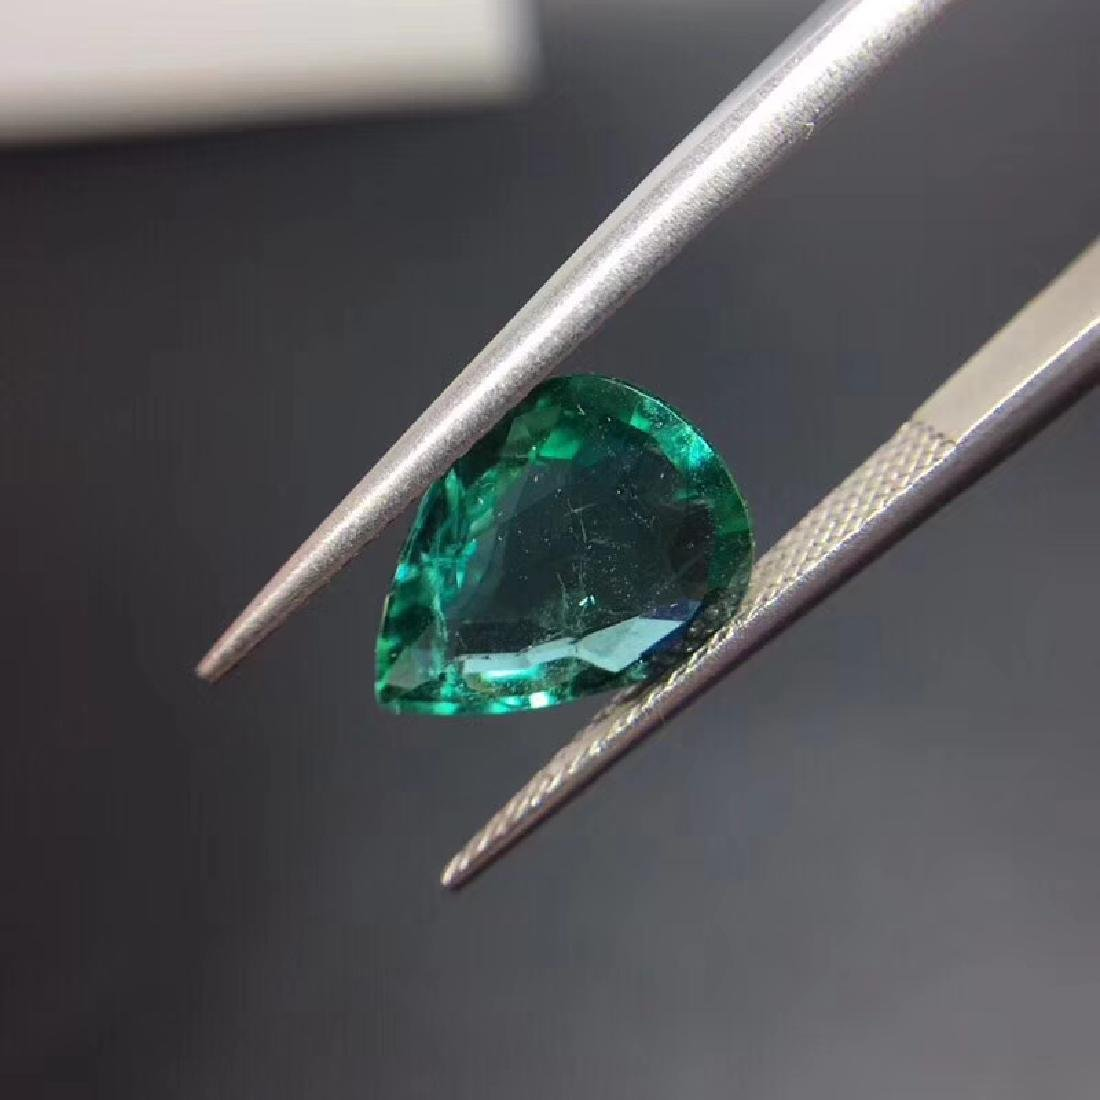 2.97 ct Emerald 9.3*12.3*4.2 mm Pear Cut - 5